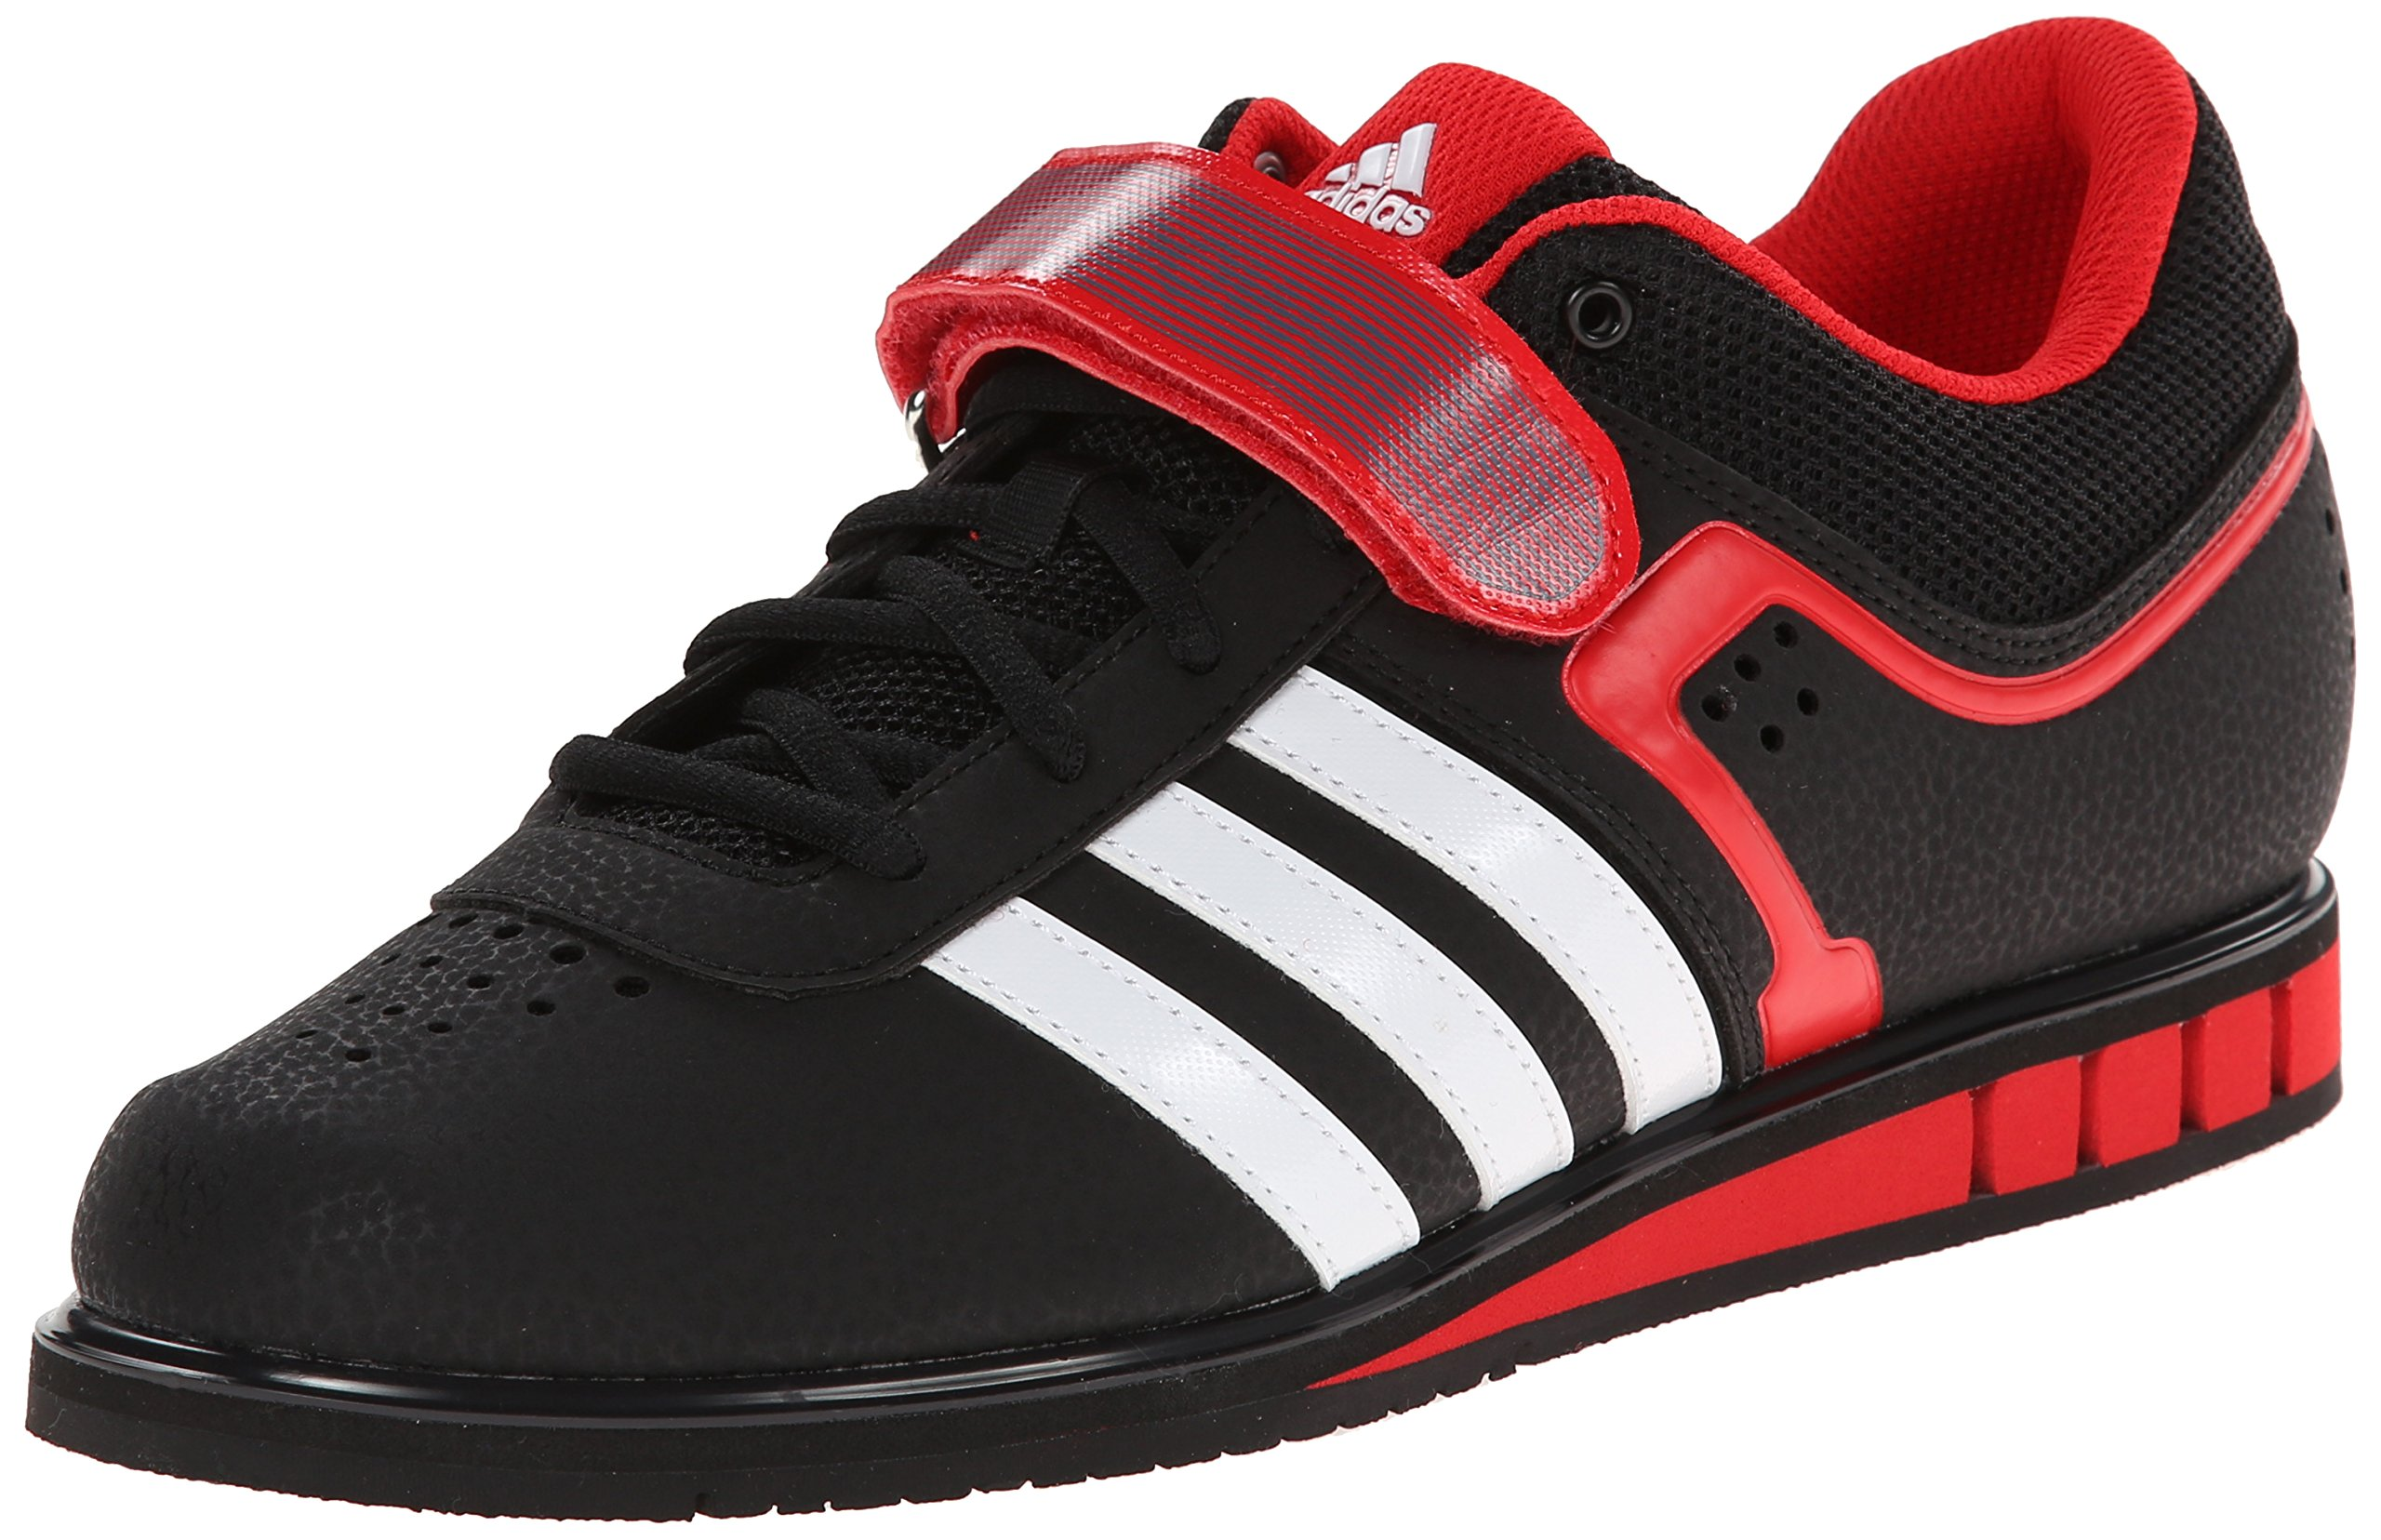 quality design 9d579 4619a Galleon - Adidas Mens Powerlift.2-M, BlackWhiteVivid Red, 15